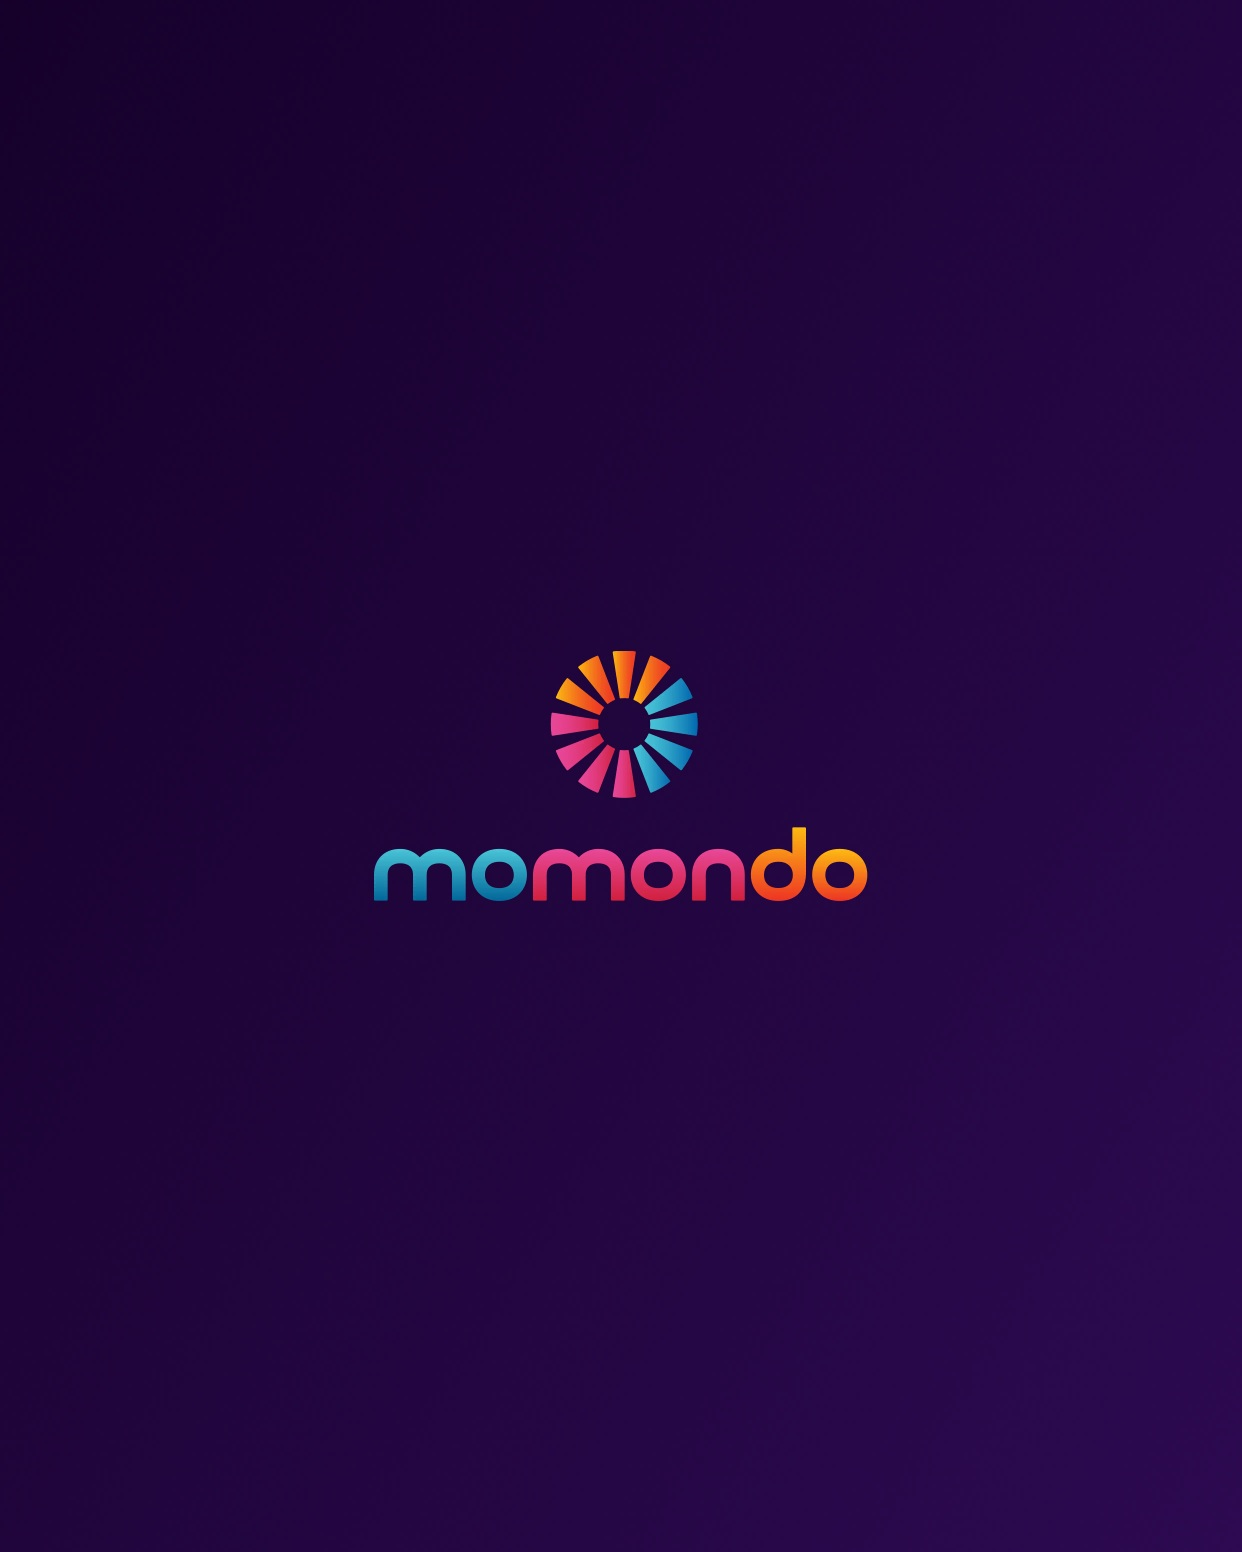 momondo: Searches many sites to get the best price available on flights, hotels, and car rentals. - This app is not a booking site, it redirects you to the booking site. Always check more than one search engine. You can set alerts for price changes and search by your budget, destination, or dates.